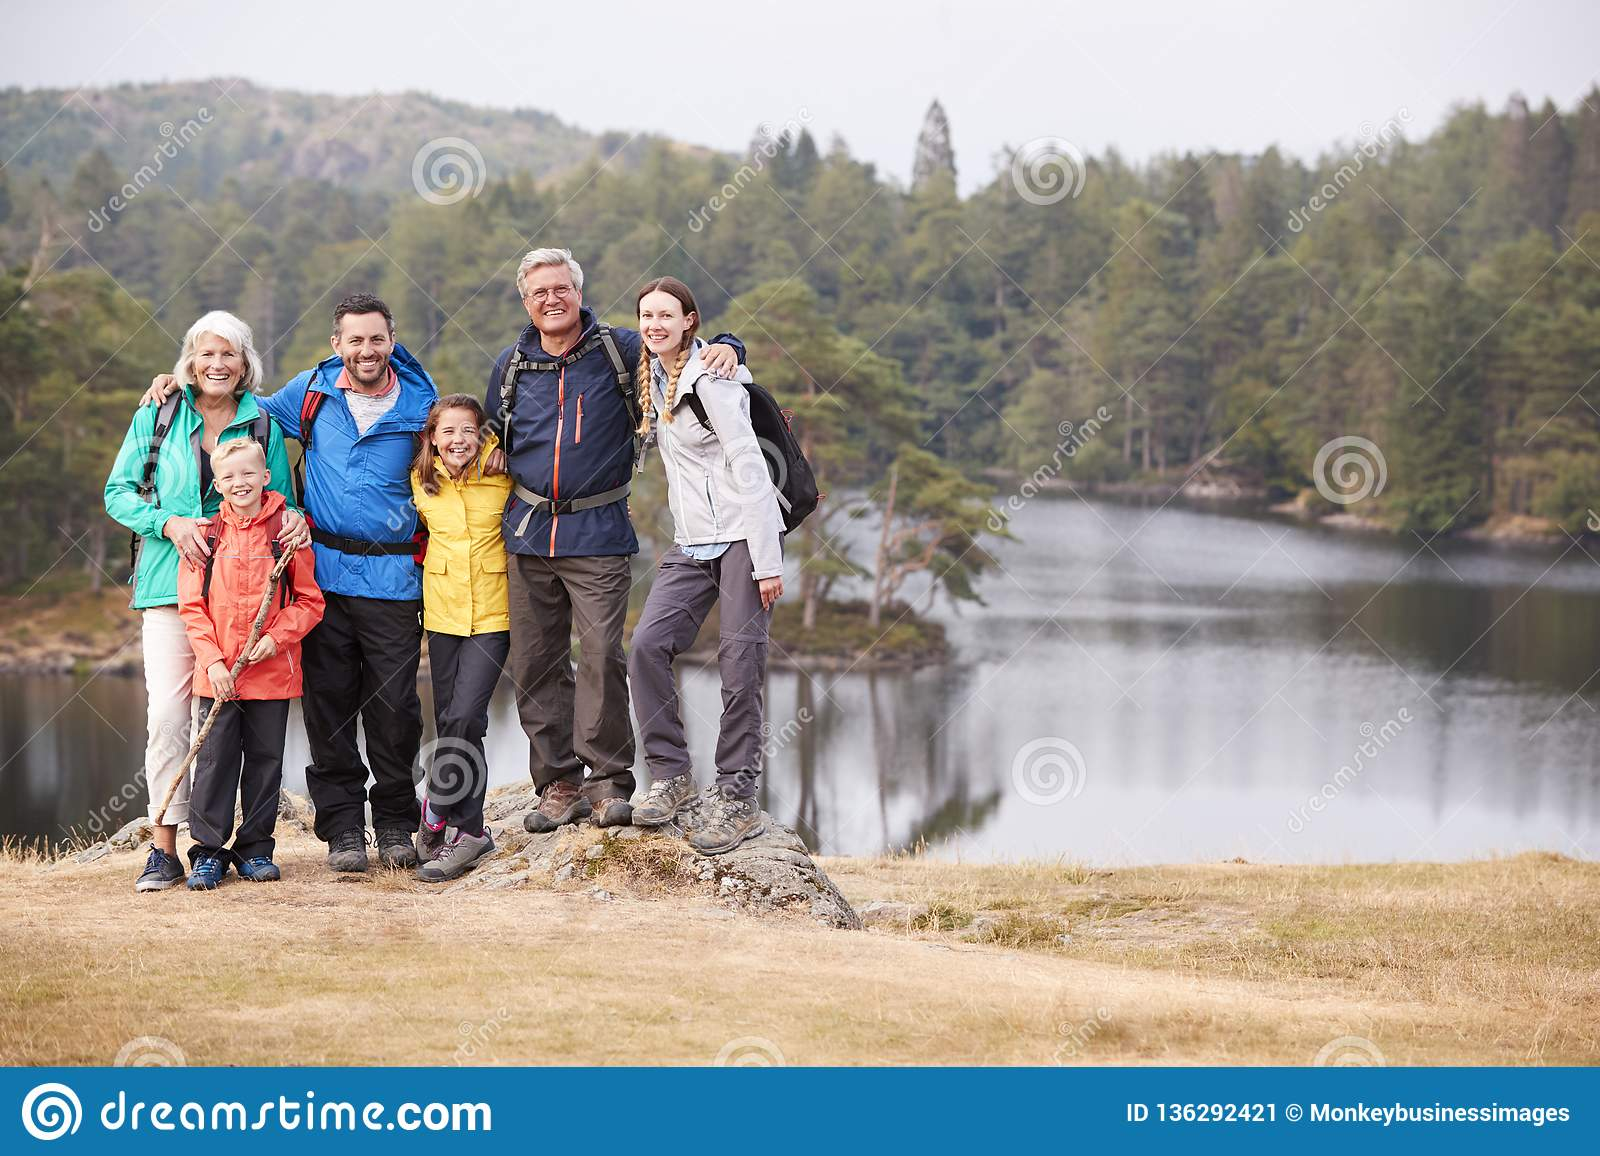 Multi generation family stand embracing by a lake, smiling to camera, front view, Lake District, UK